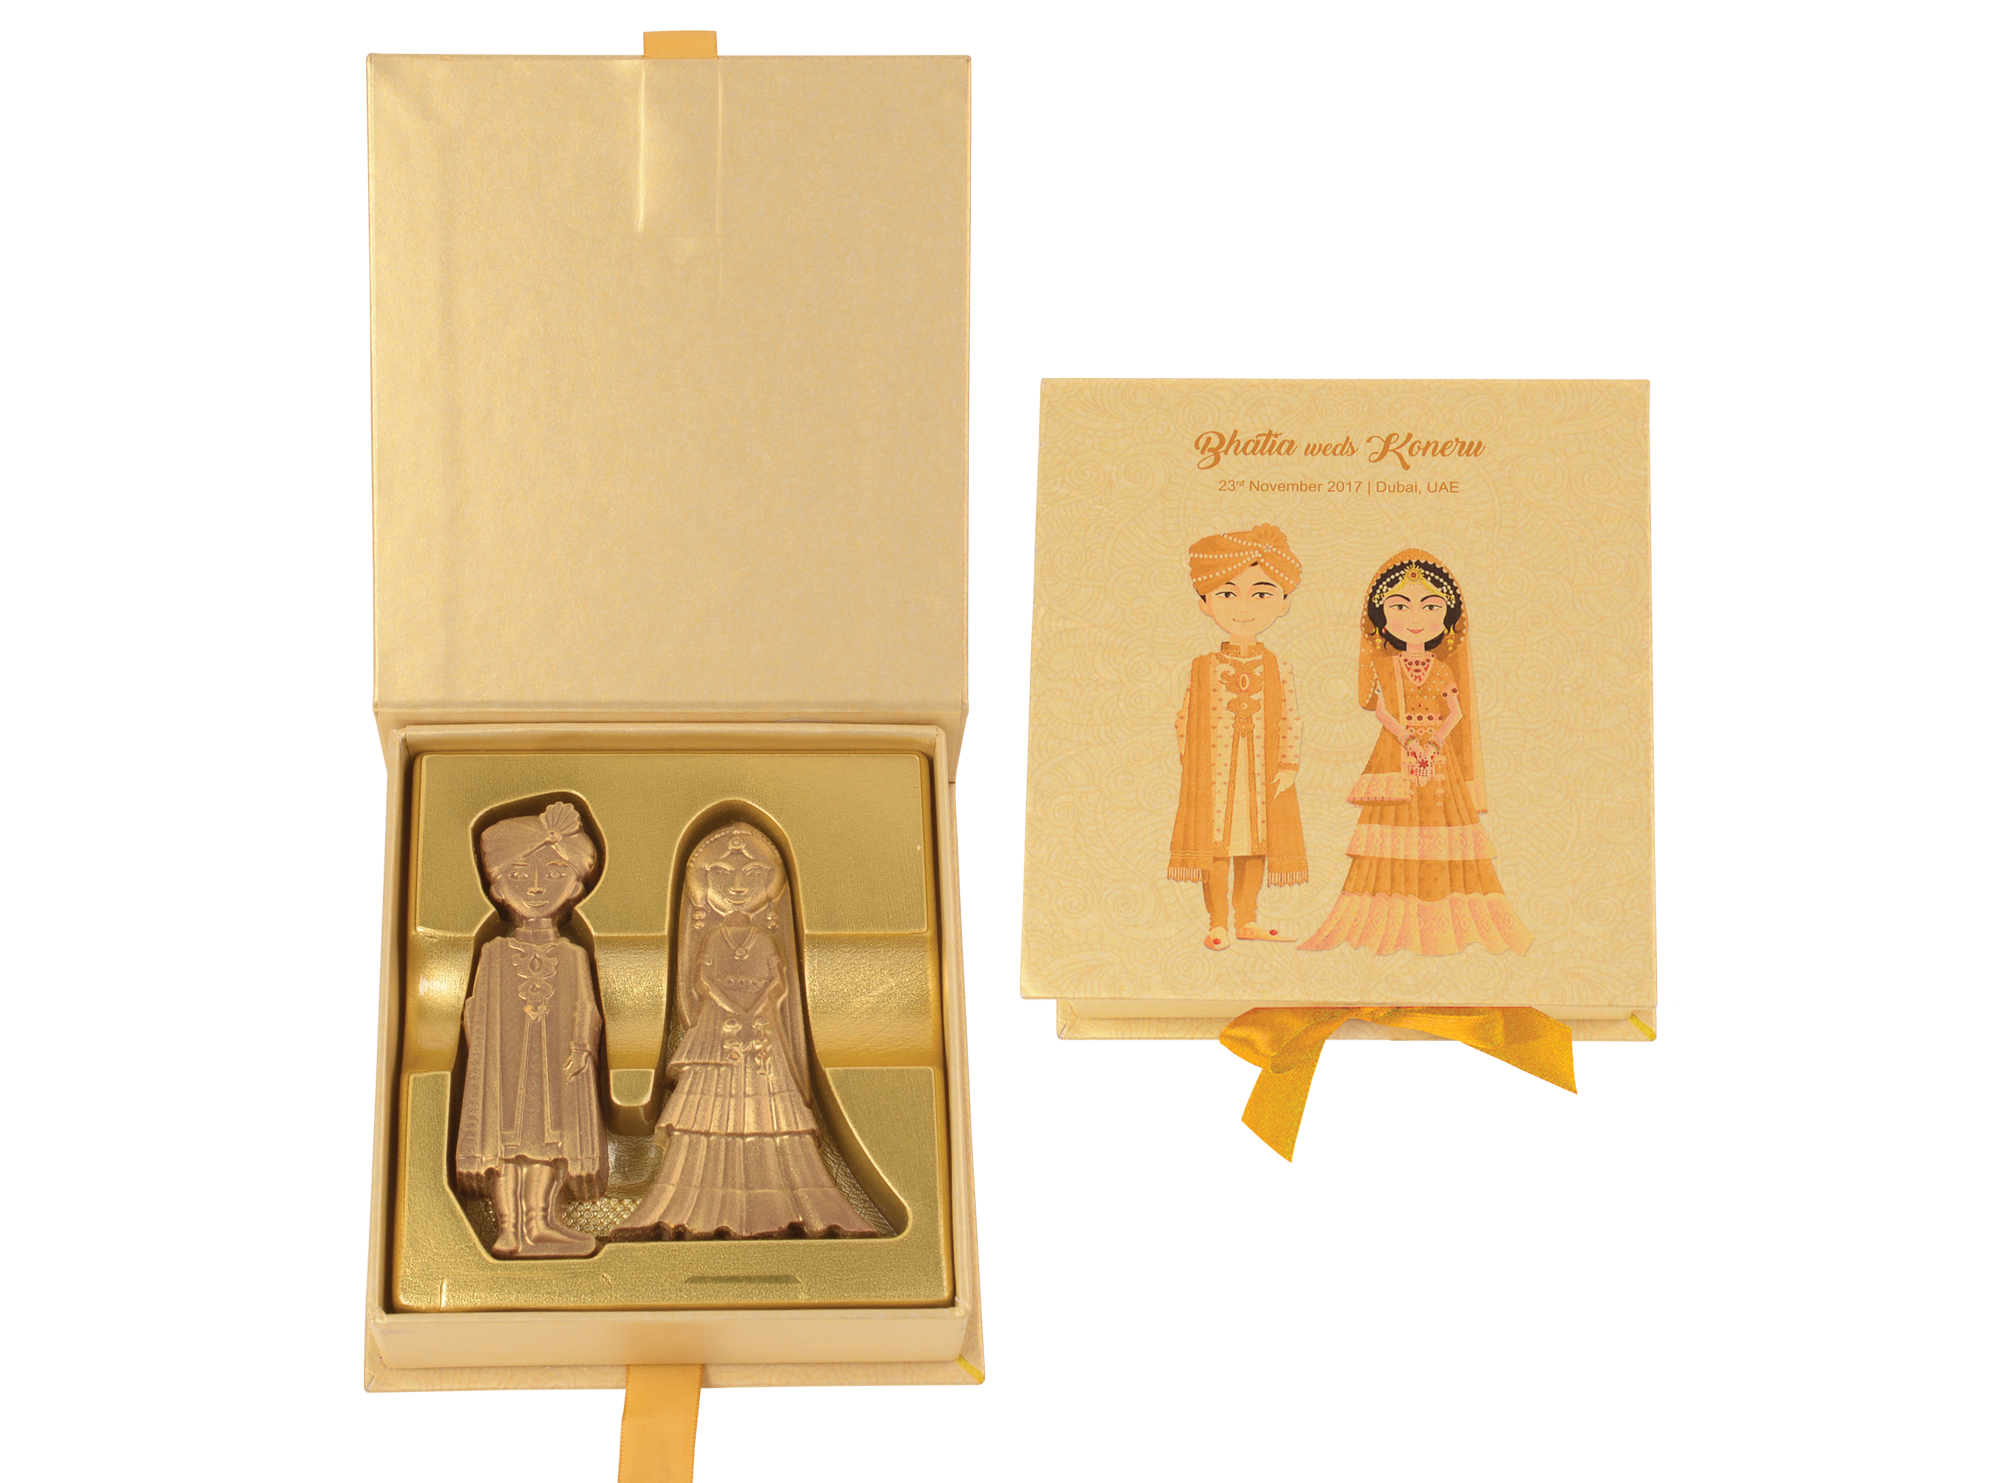 Grand Maharajah Couple, 2 Pcs Customized Belgian Chocolate